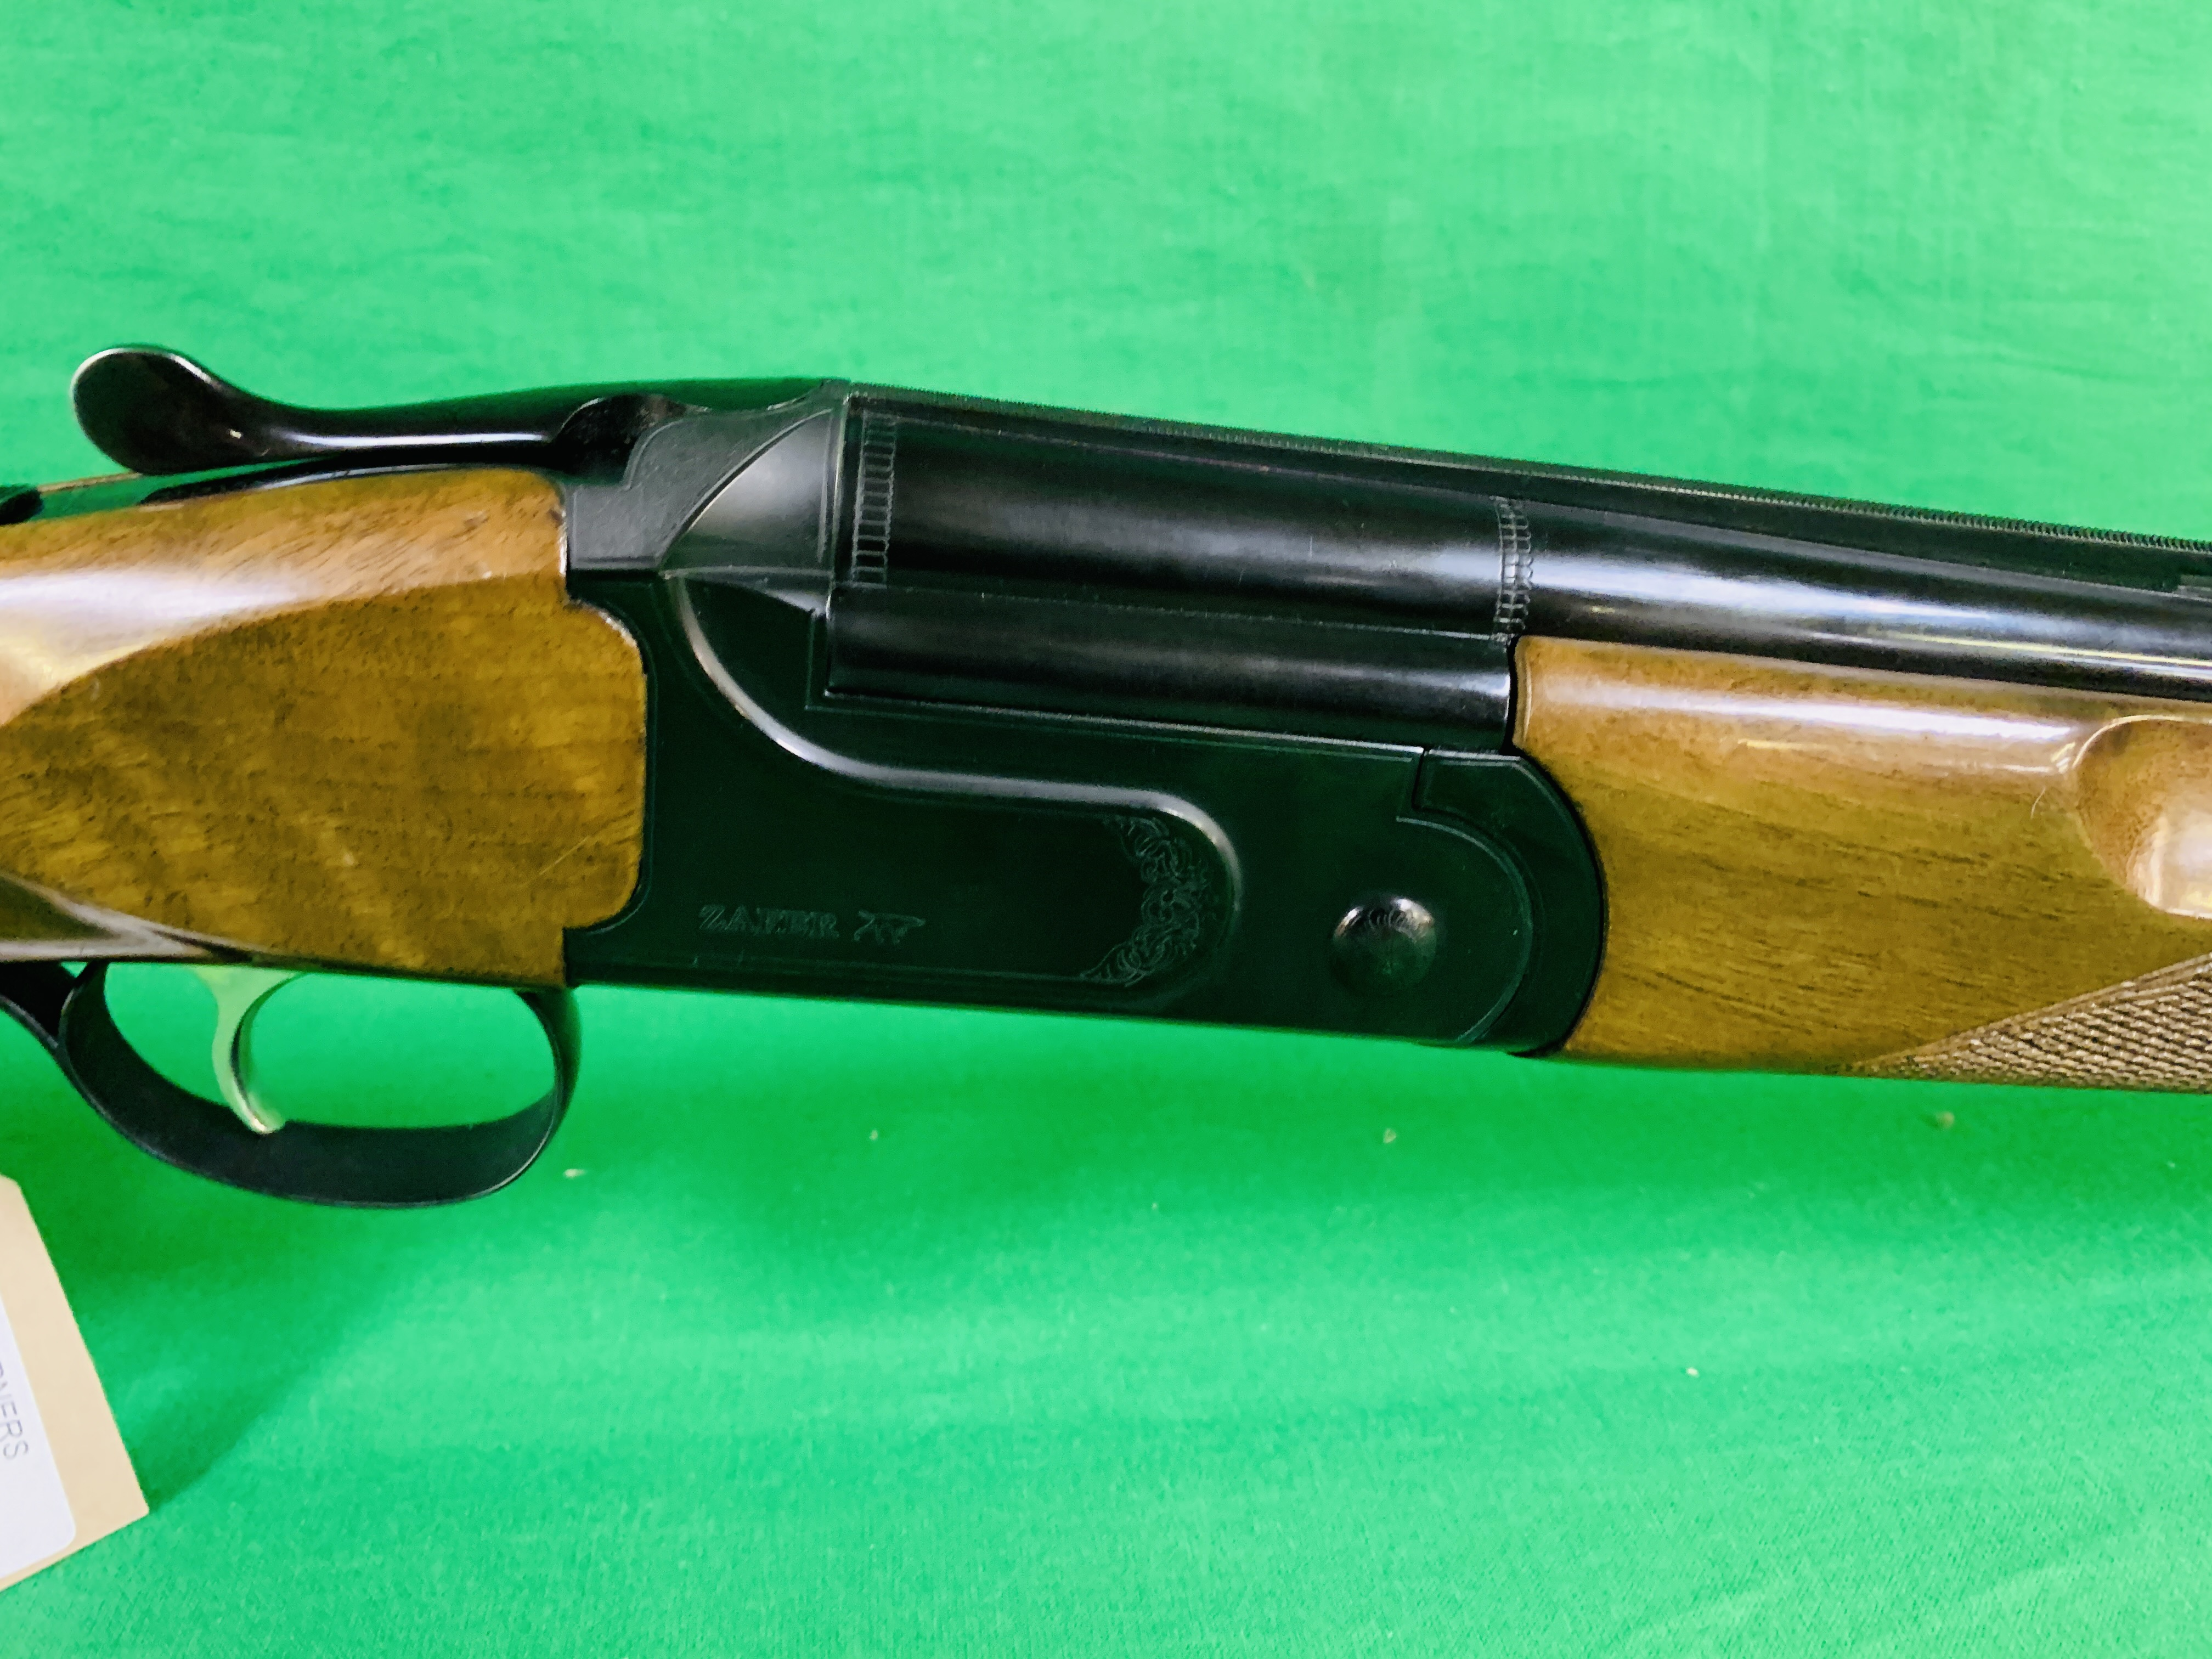 ZAFER MODEL 01612 12 BORE OVER AND UNDER SHOTGUN # 01483, SELECTABLE SINGLE TRIGGER, NON EJECTOR, - Image 3 of 8